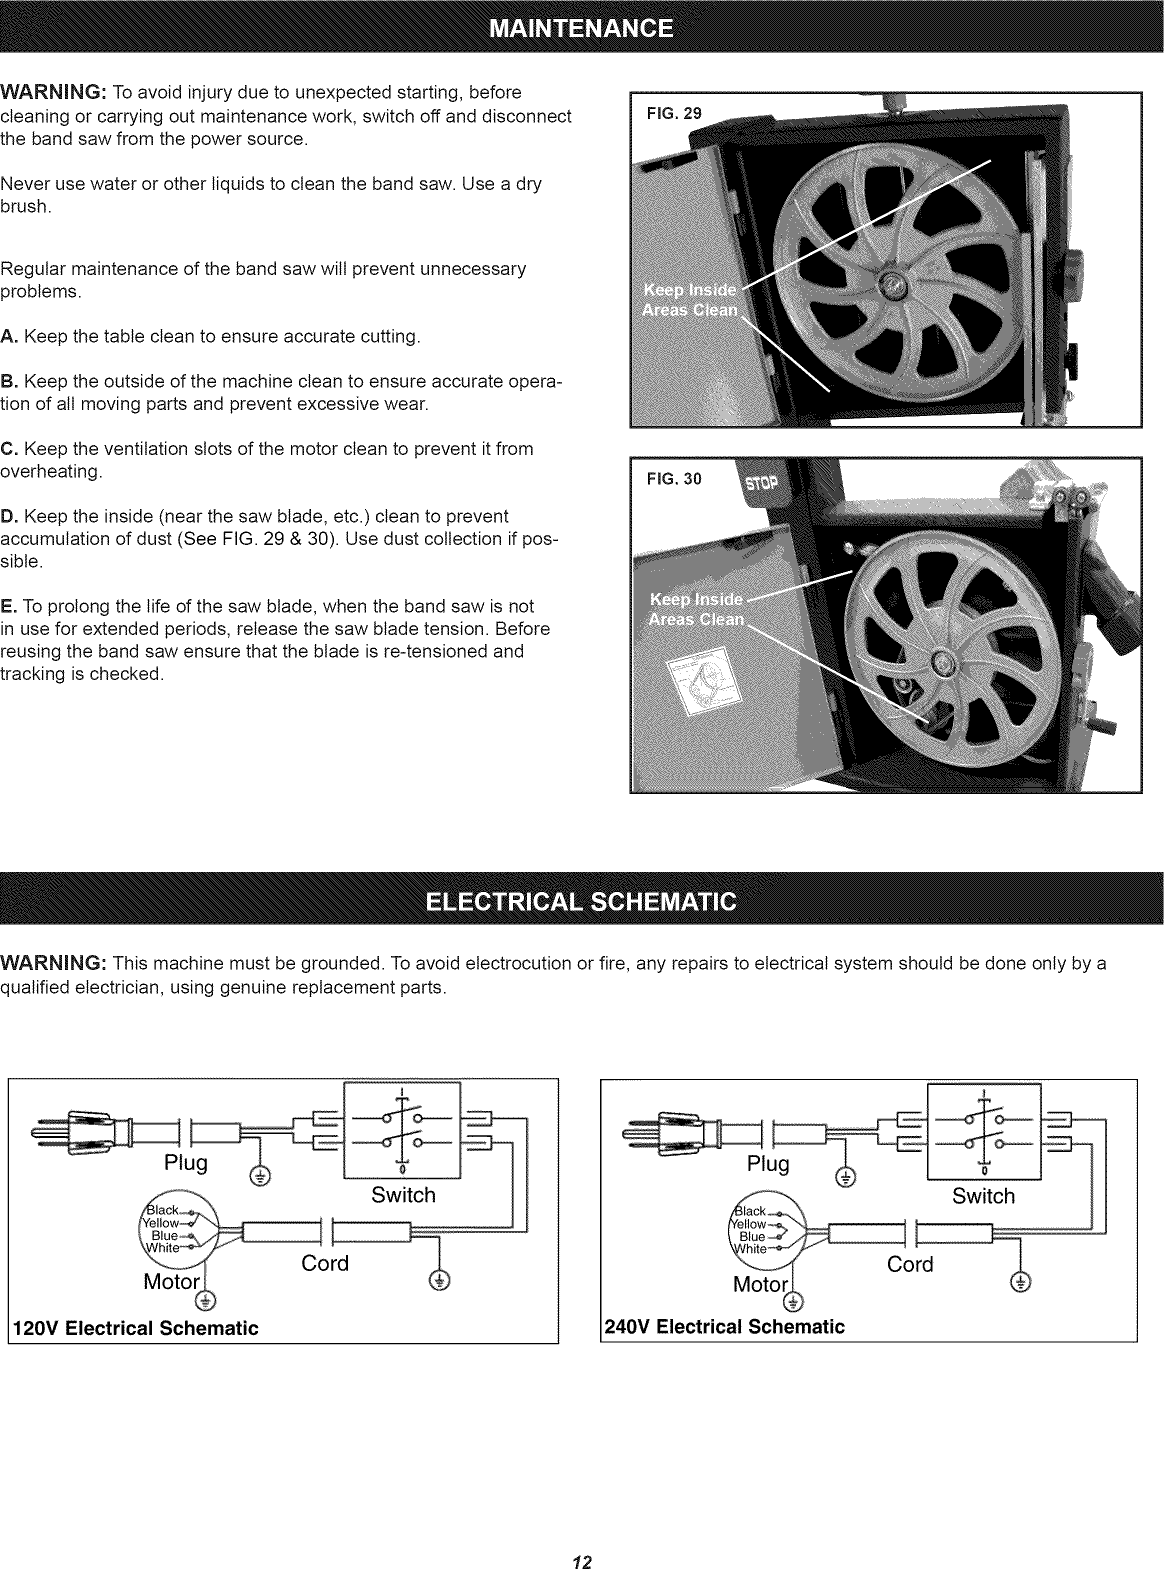 Craftsman 12432607 User Manual Band Saw Manuals And Guides 1205002l B Tracker Wiring Schematic Warning To Avoid Injury Due Unexpected Starting Beforecleaning Or Carrying Out Maintenance Work